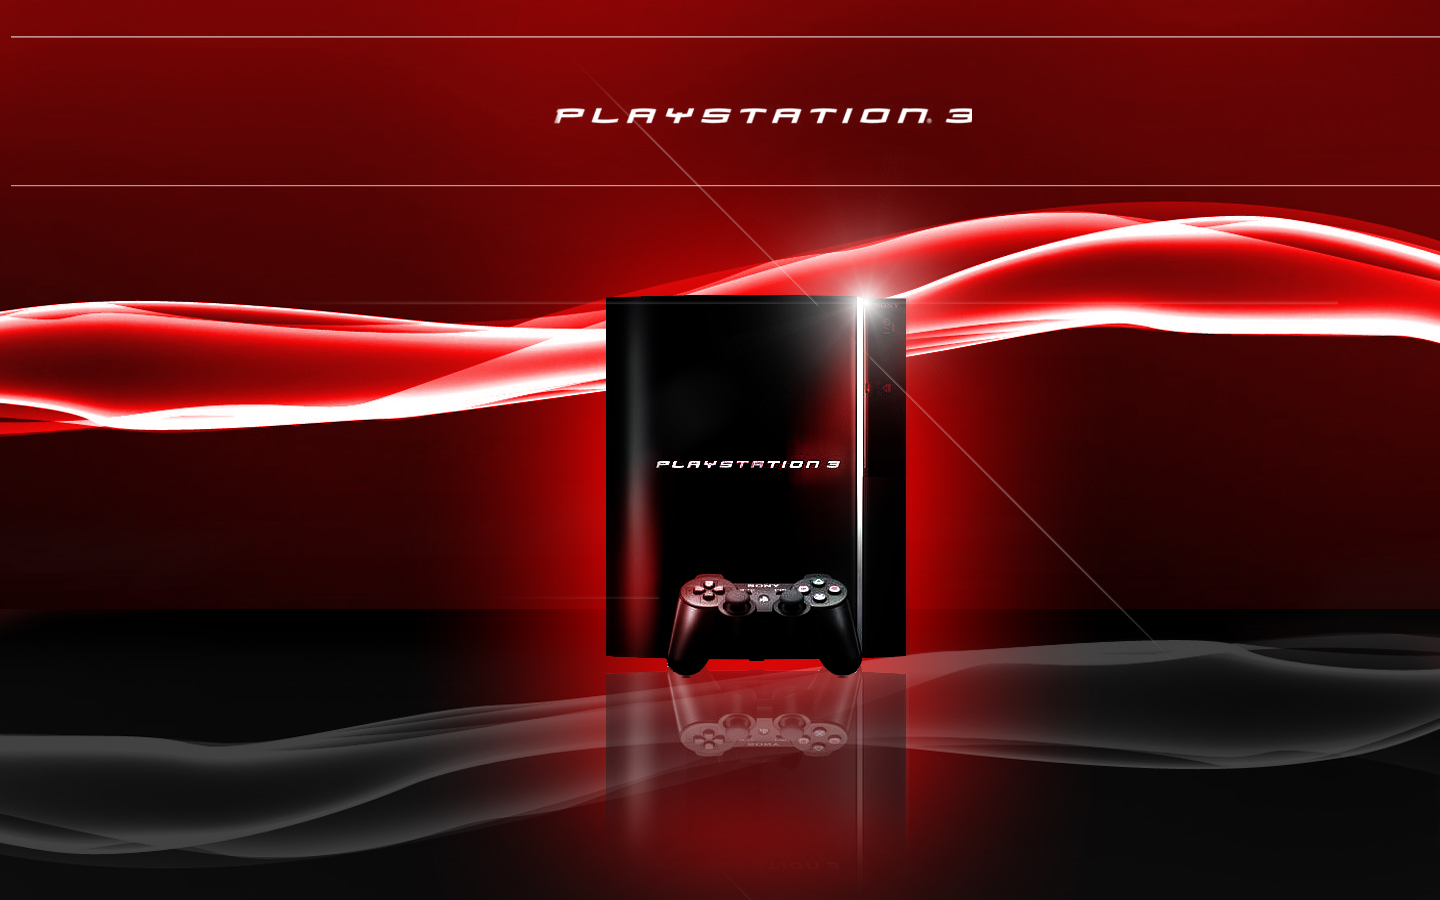 Playstation 3 Wallpaper